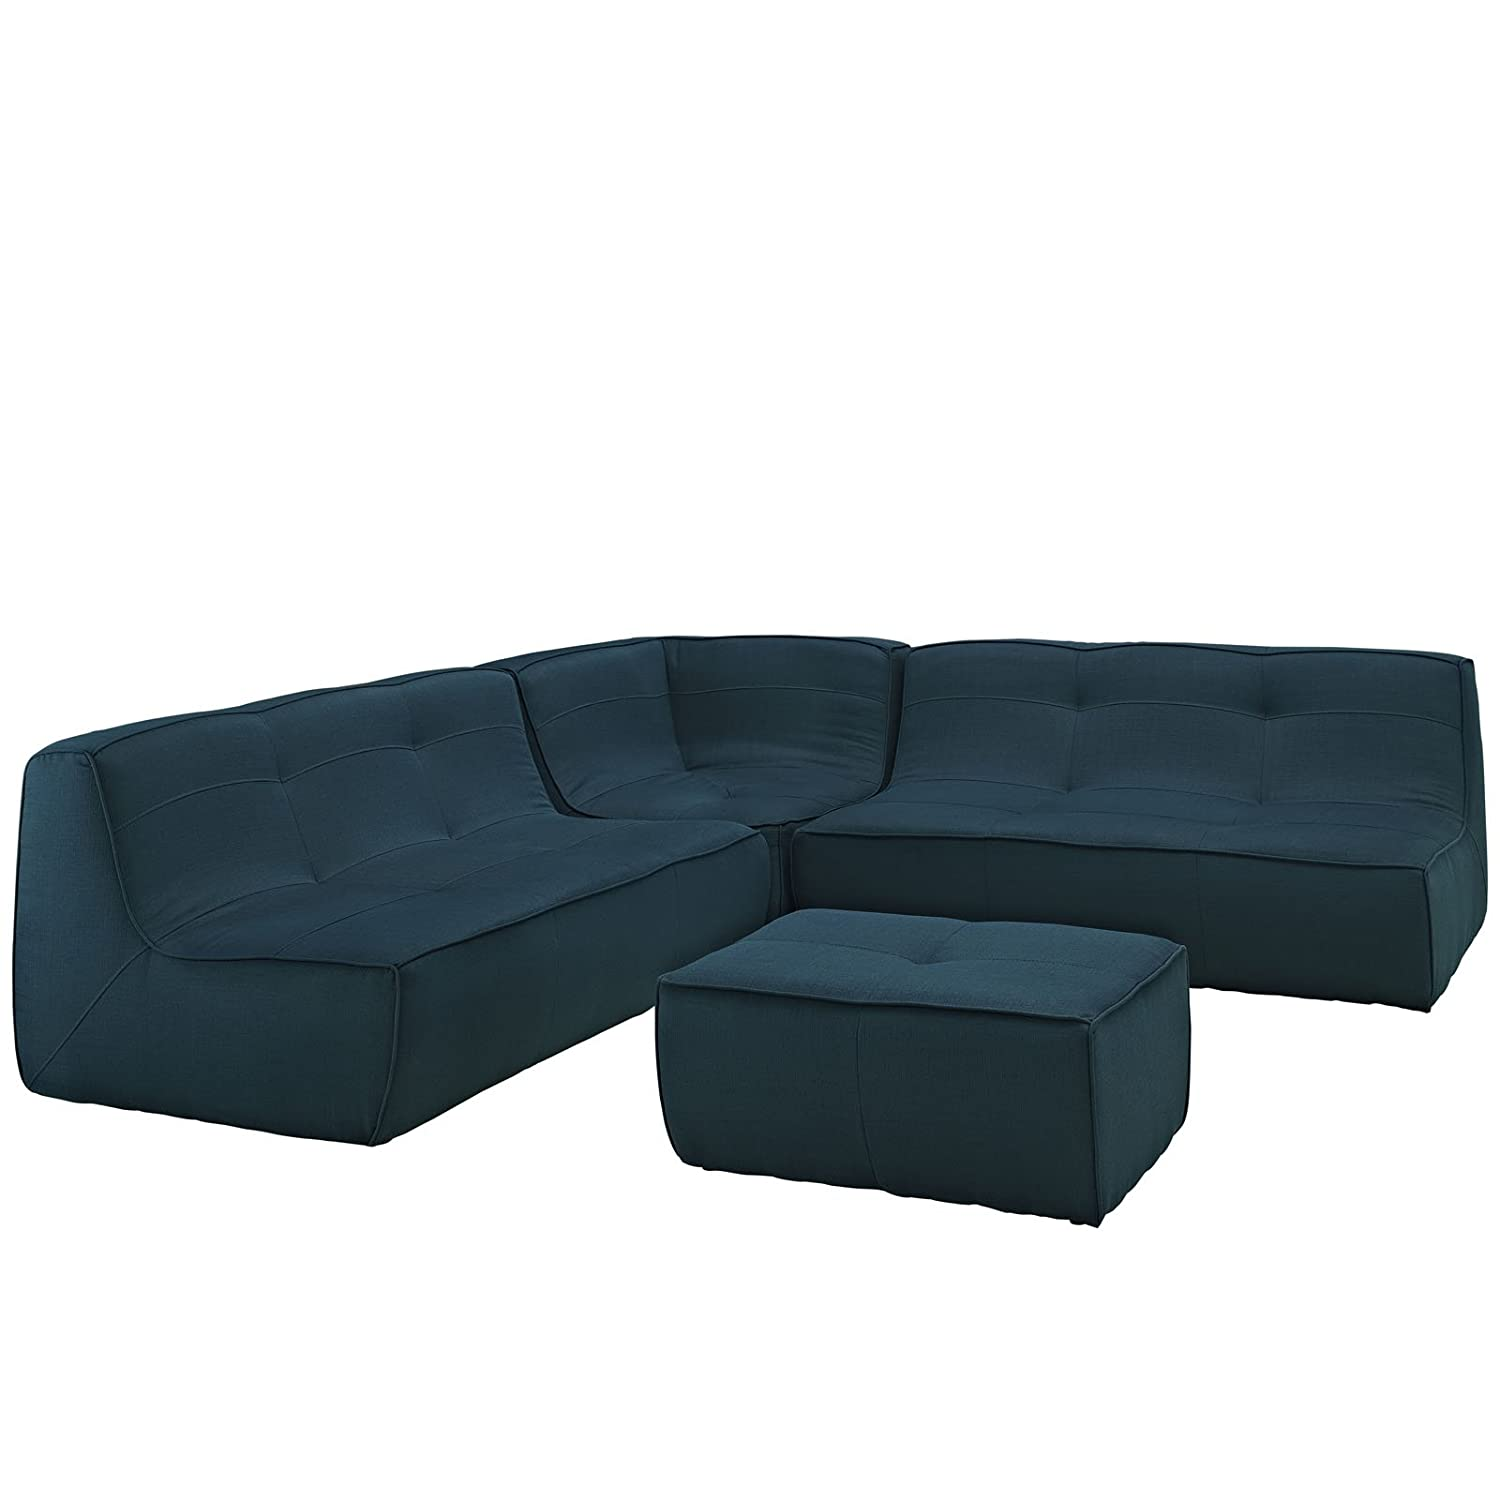 Modway Align 4 Piece Upholstered Sectional Sofa Set EEI-1288-AZU